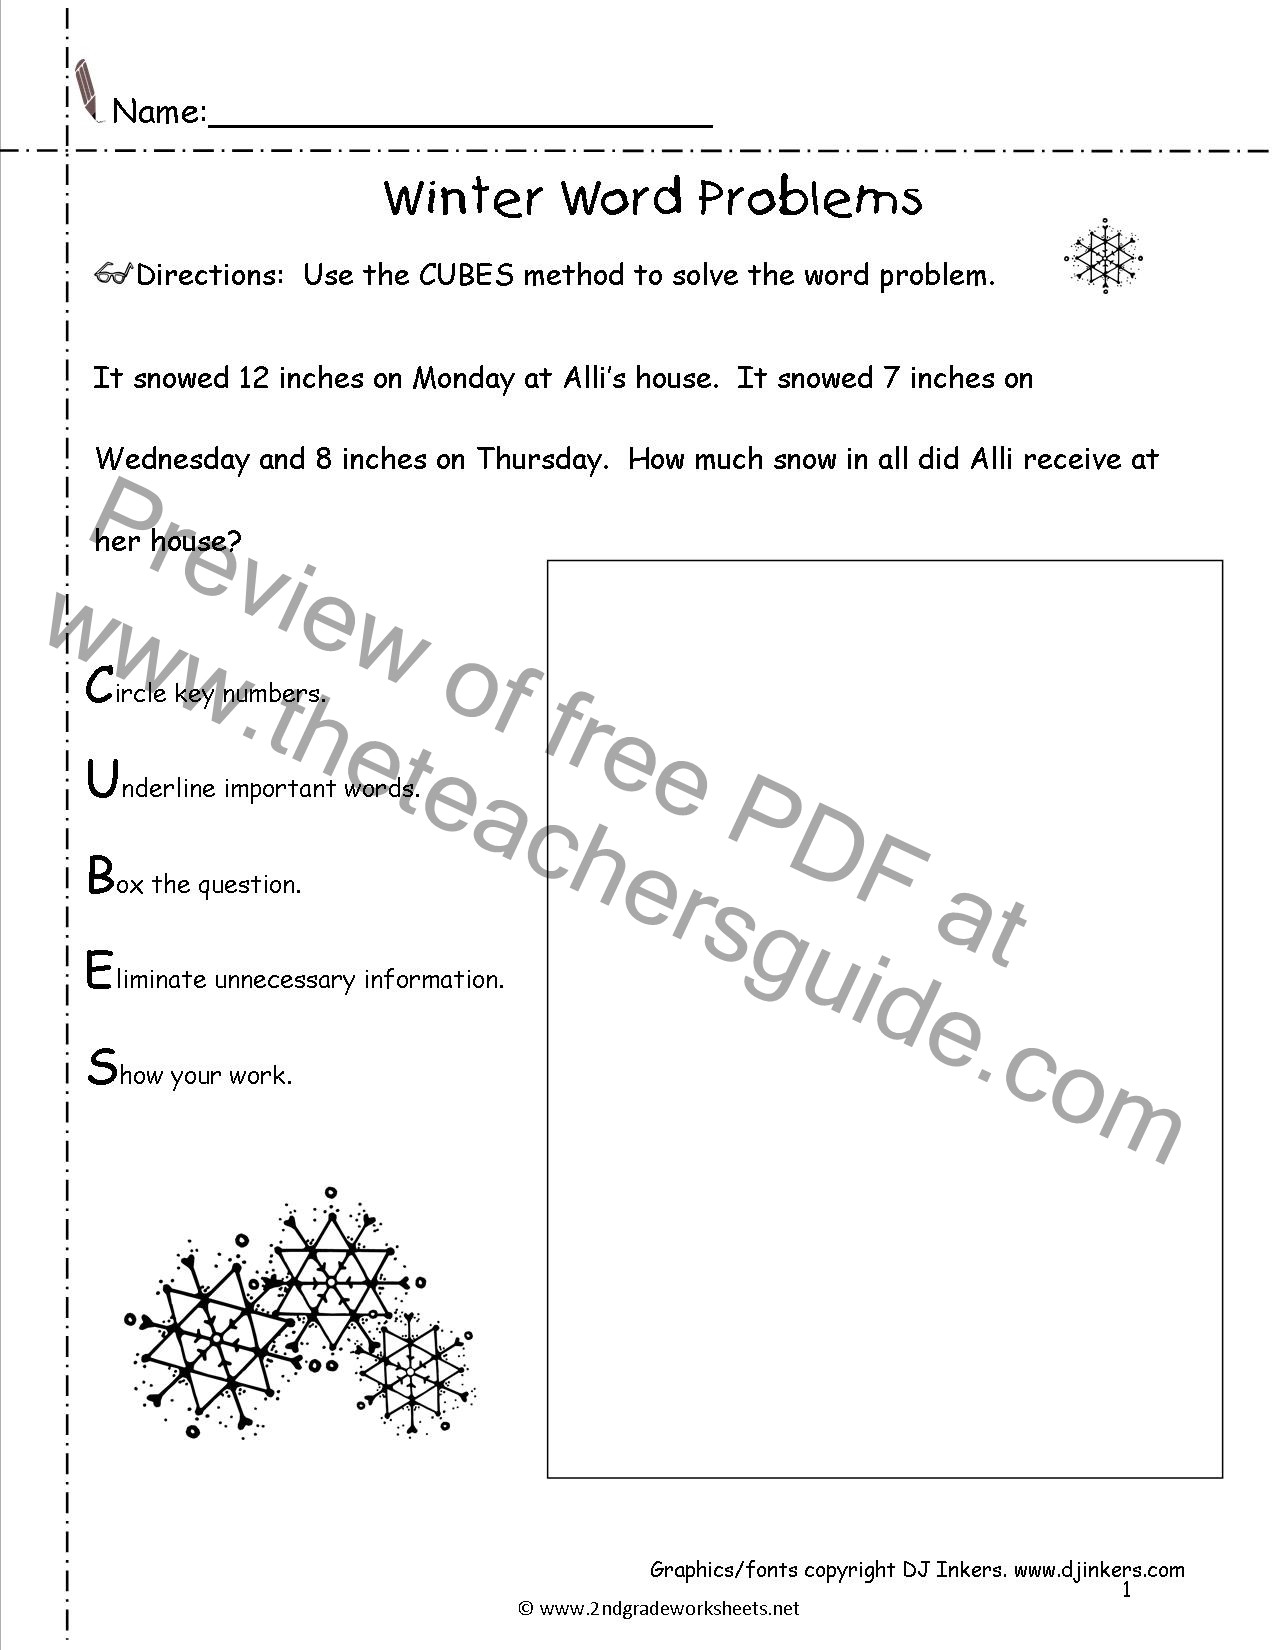 Theme Worksheets for 5th Grade Winter Lesson Plans themes Printouts Crafts